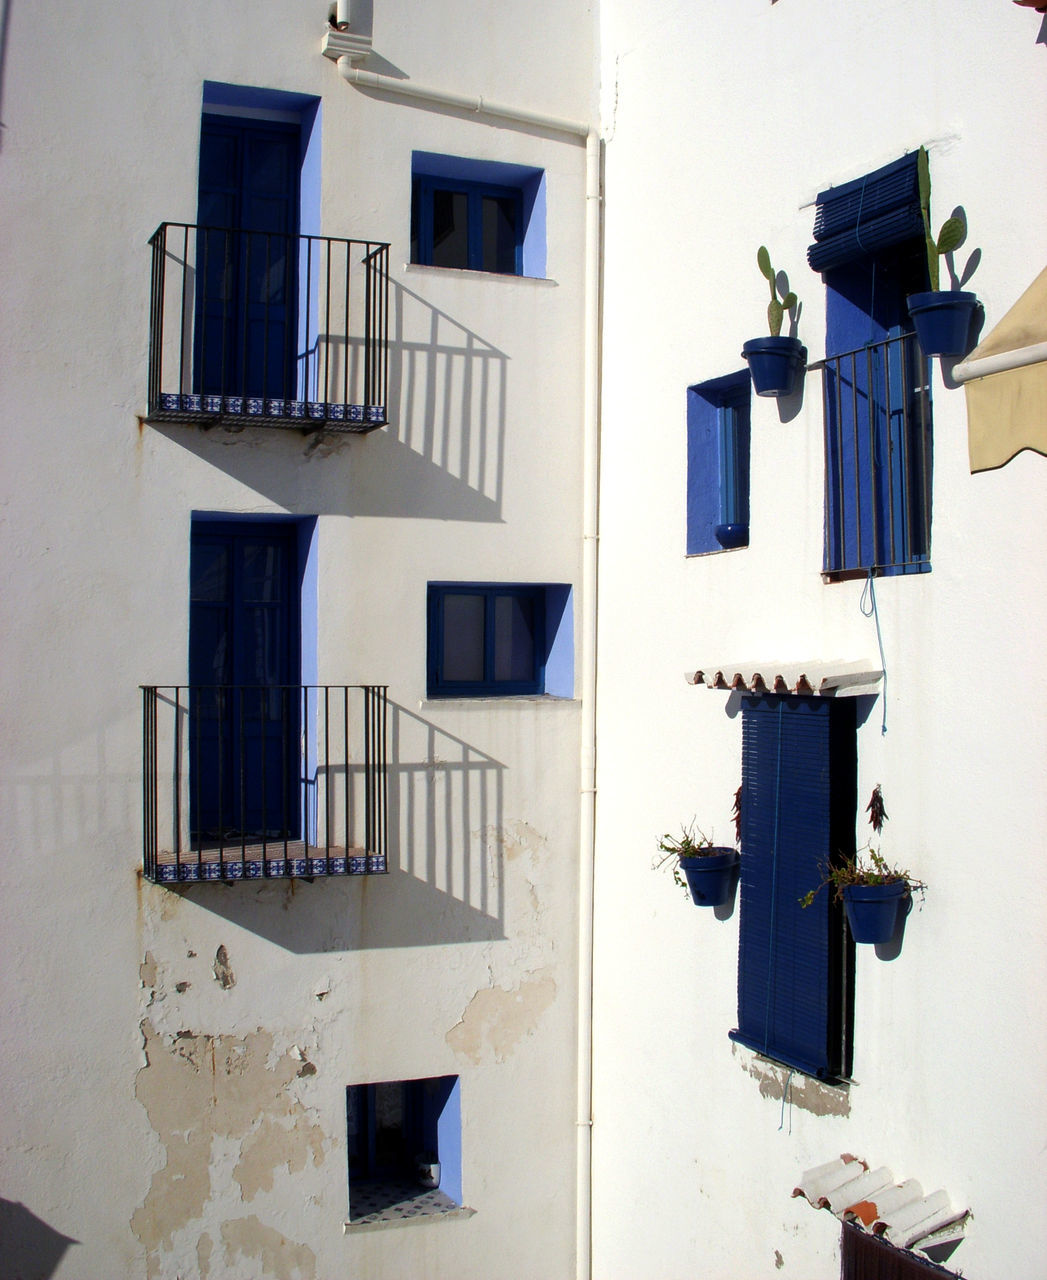 architecture, window, building exterior, built structure, outdoors, day, blue, no people, drying, whitewashed